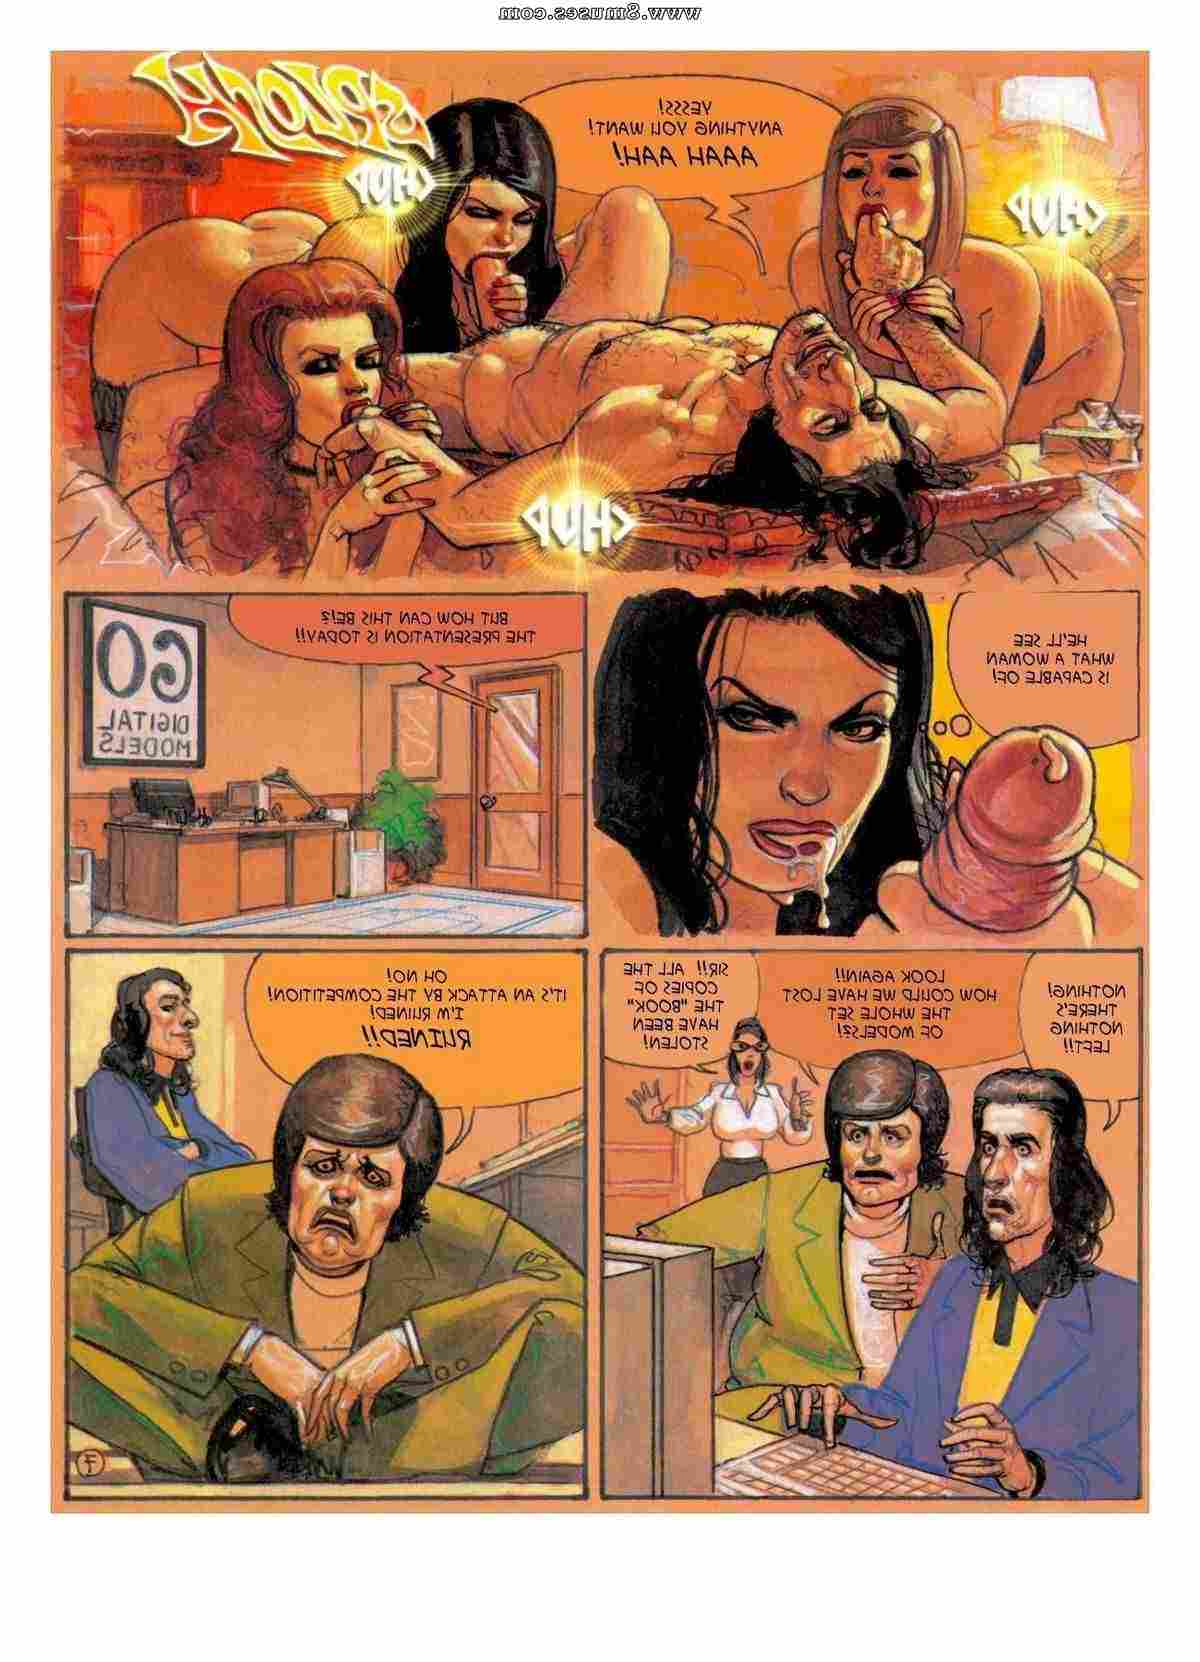 Ignacio-Noe-Comics/All-the-Right-Career-Moves All_the_Right_Career_Moves__8muses_-_Sex_and_Porn_Comics_15.jpg